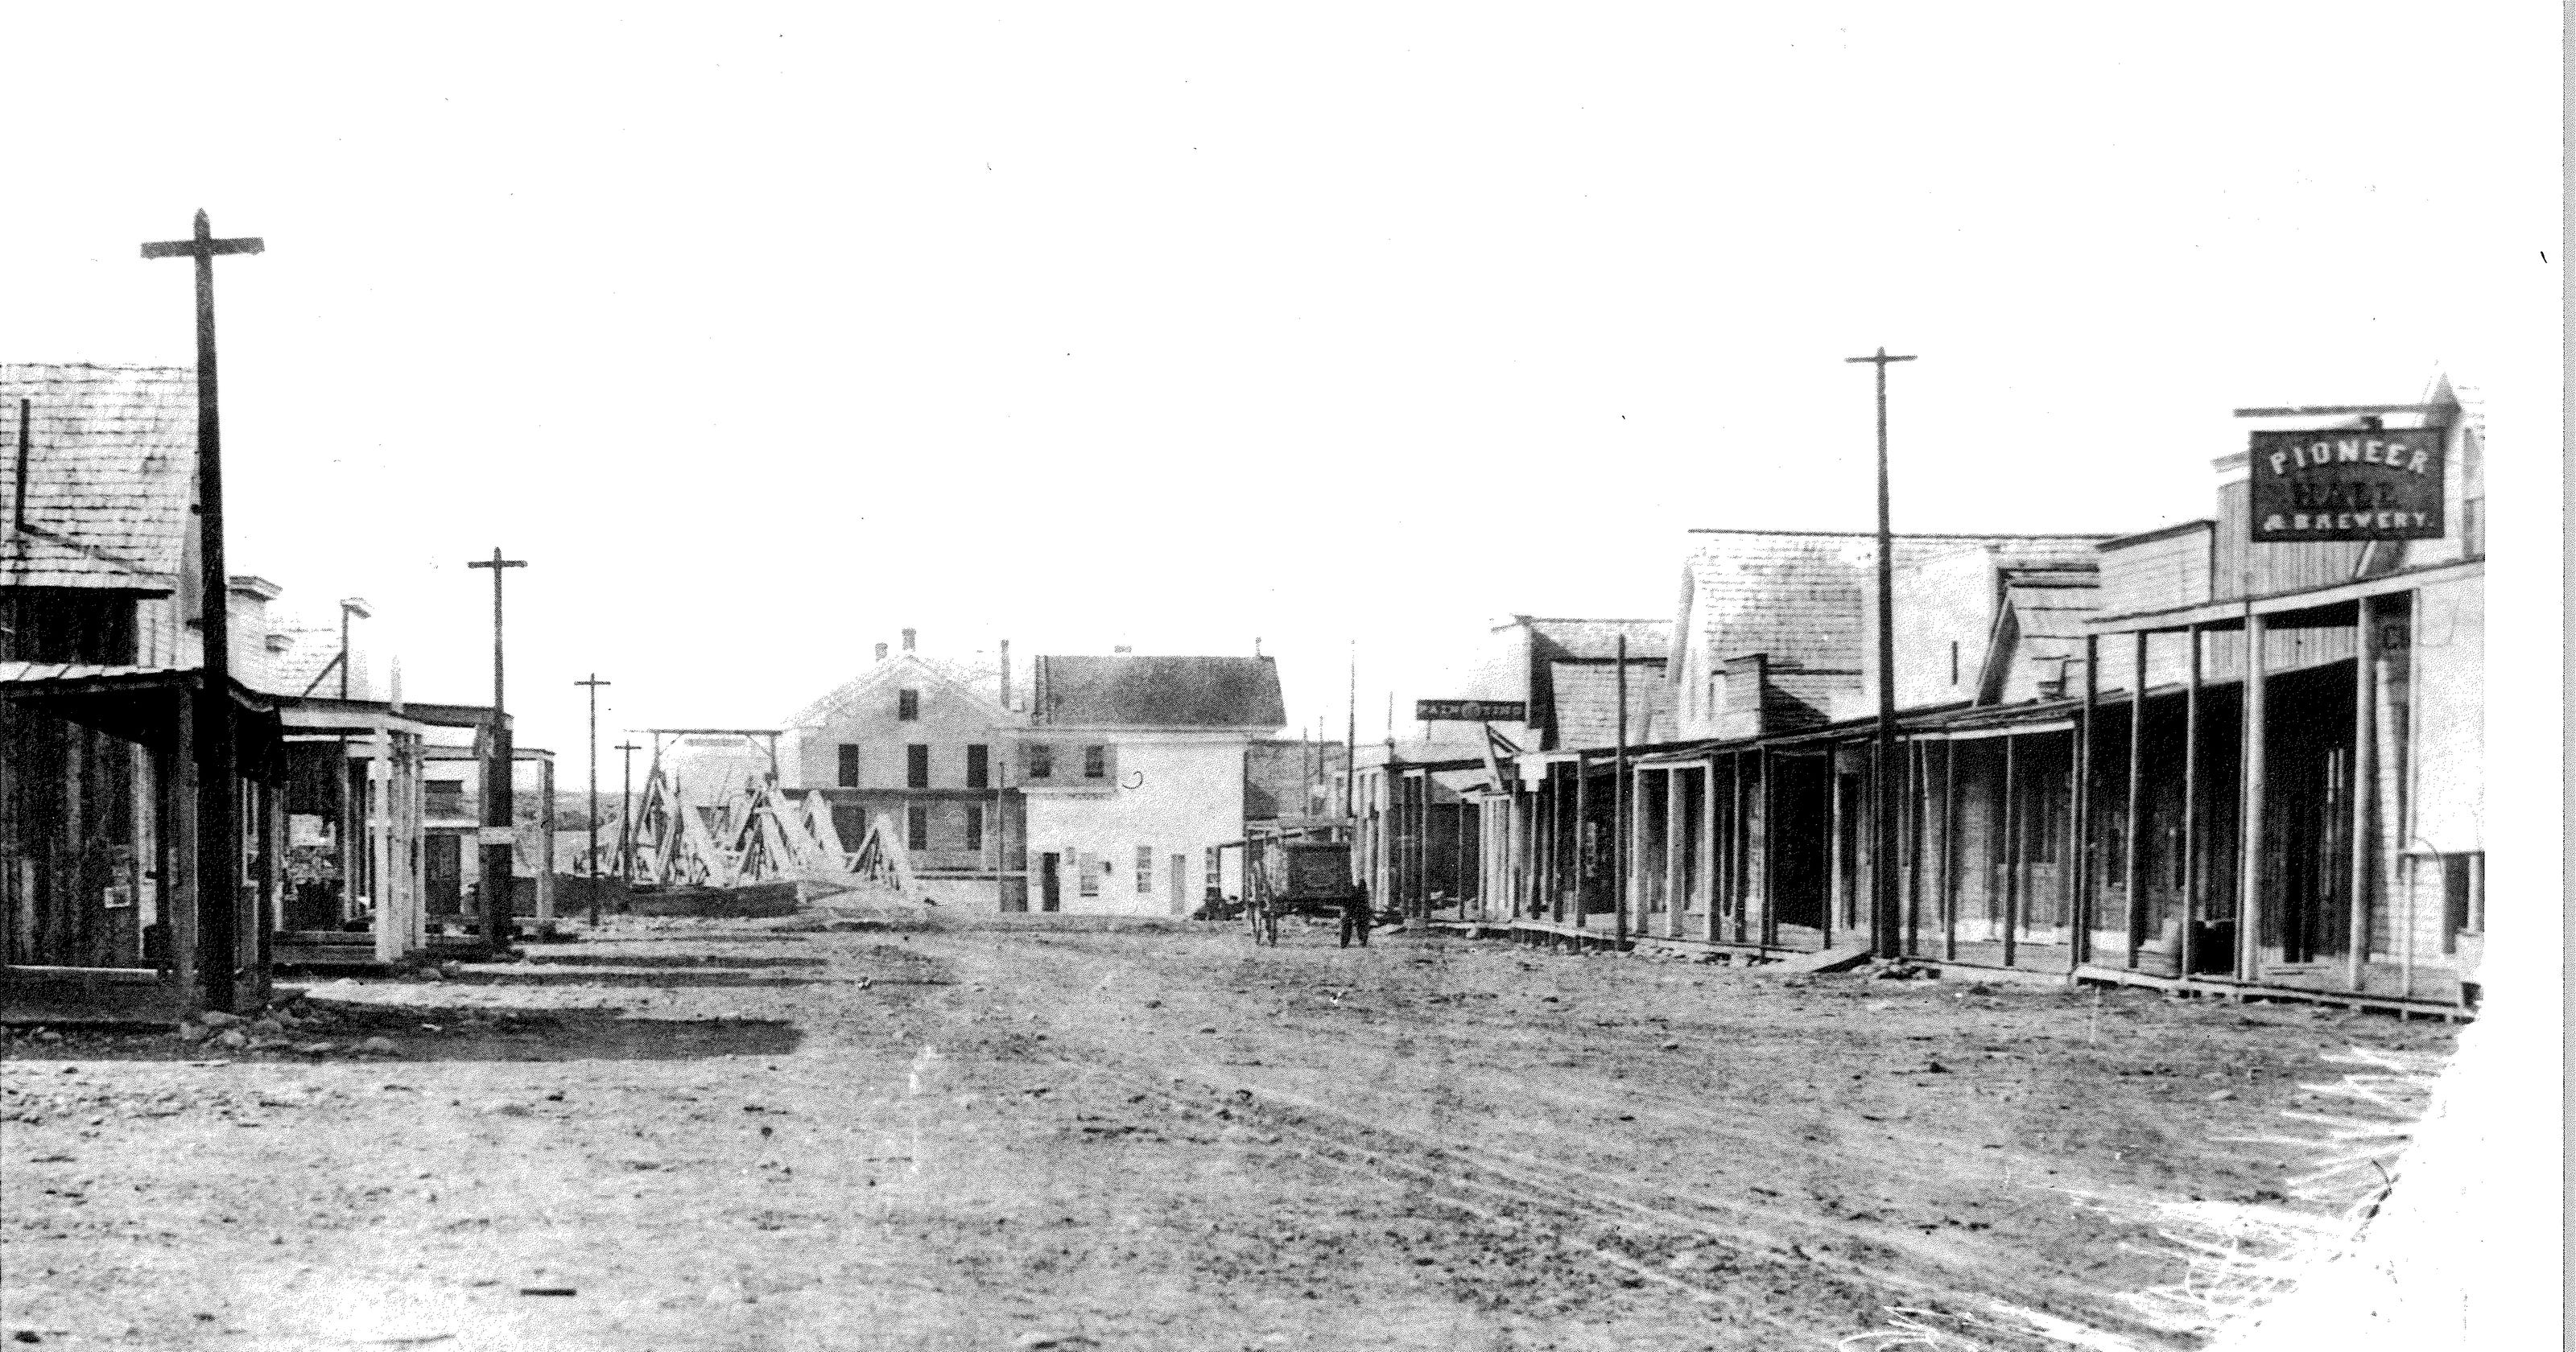 May 9, 1868: The birth of the Biggest Little City